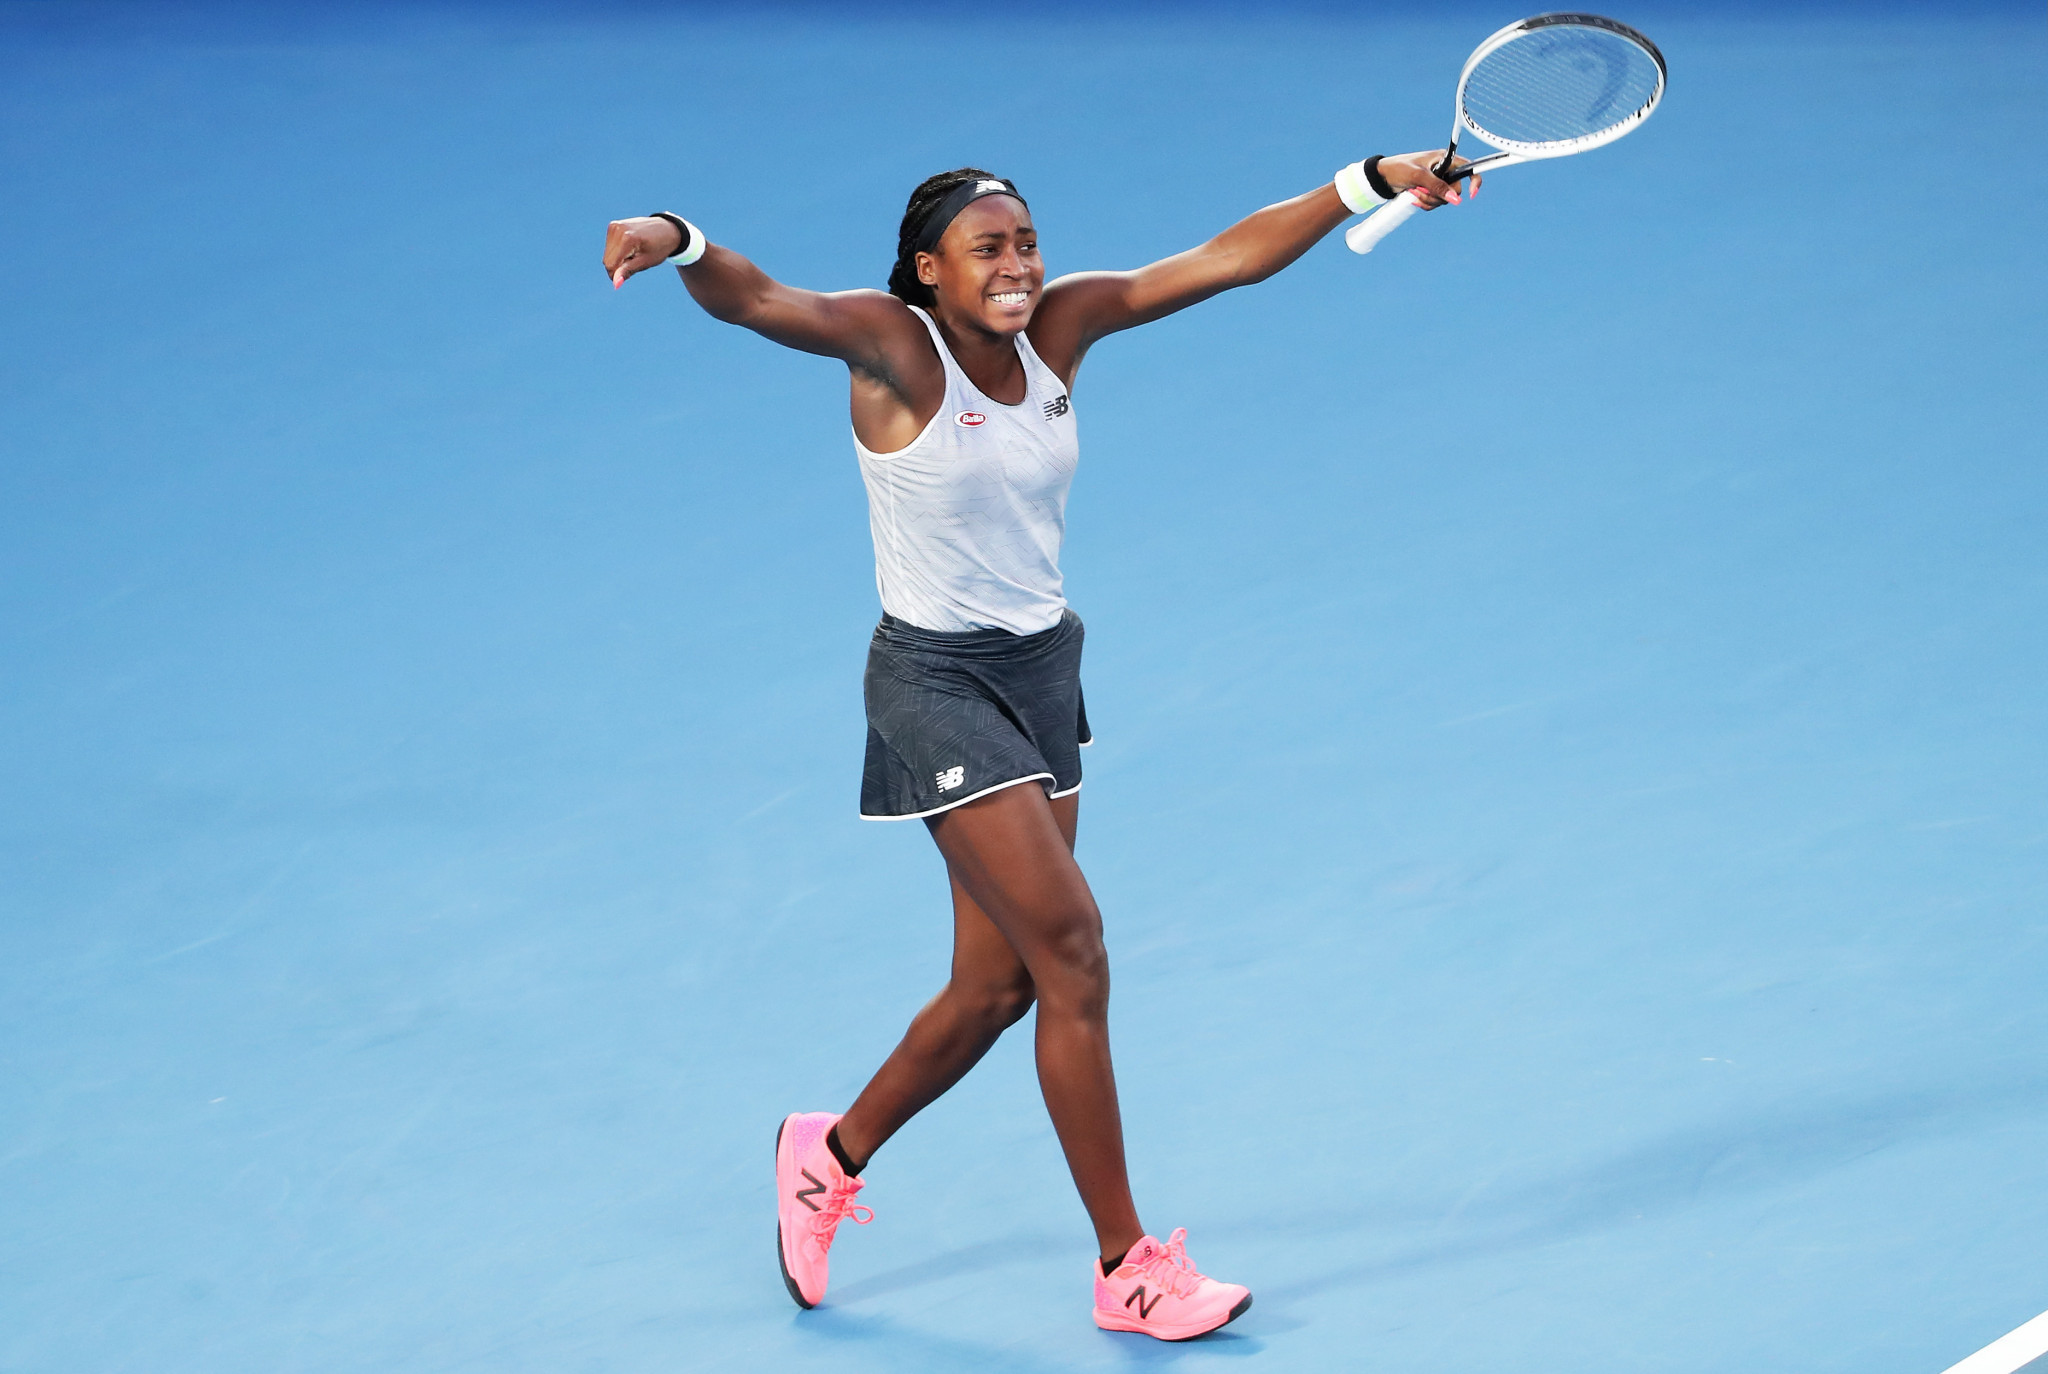 Day of shocks as Osaka and Williams both fall at Australian Open